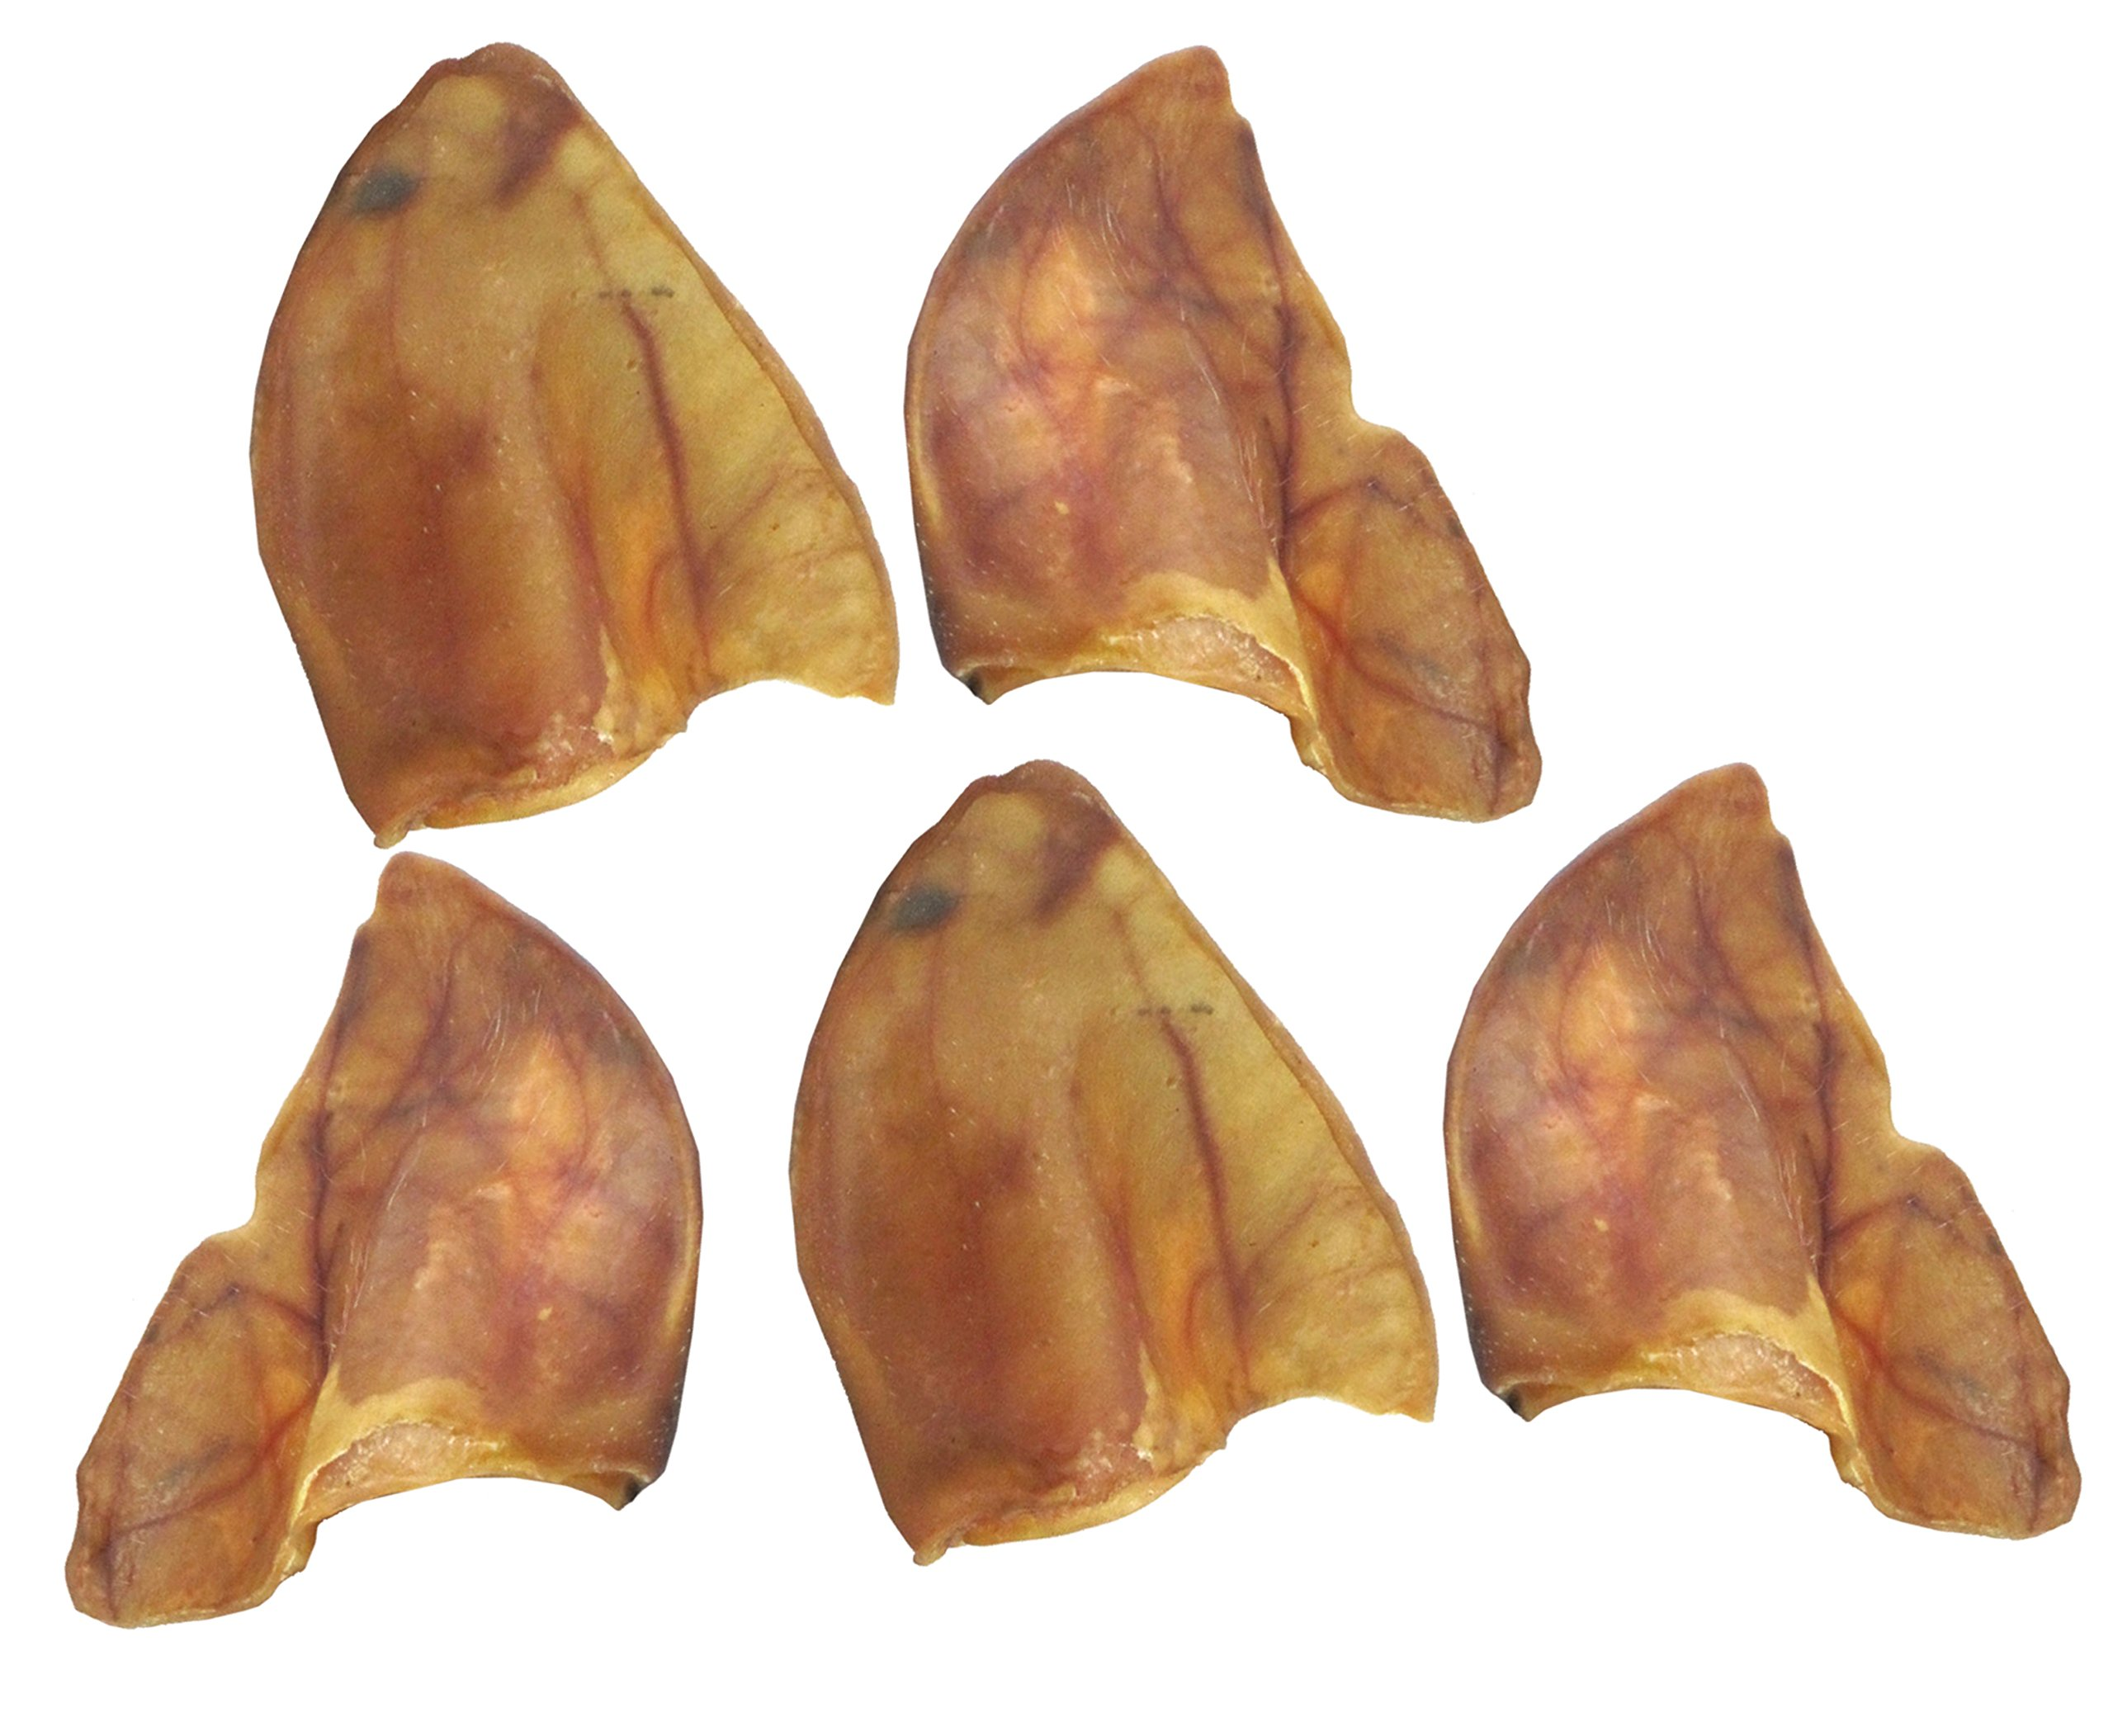 Butcher Shop 100% Pig Ears (5 Pack), 114 g